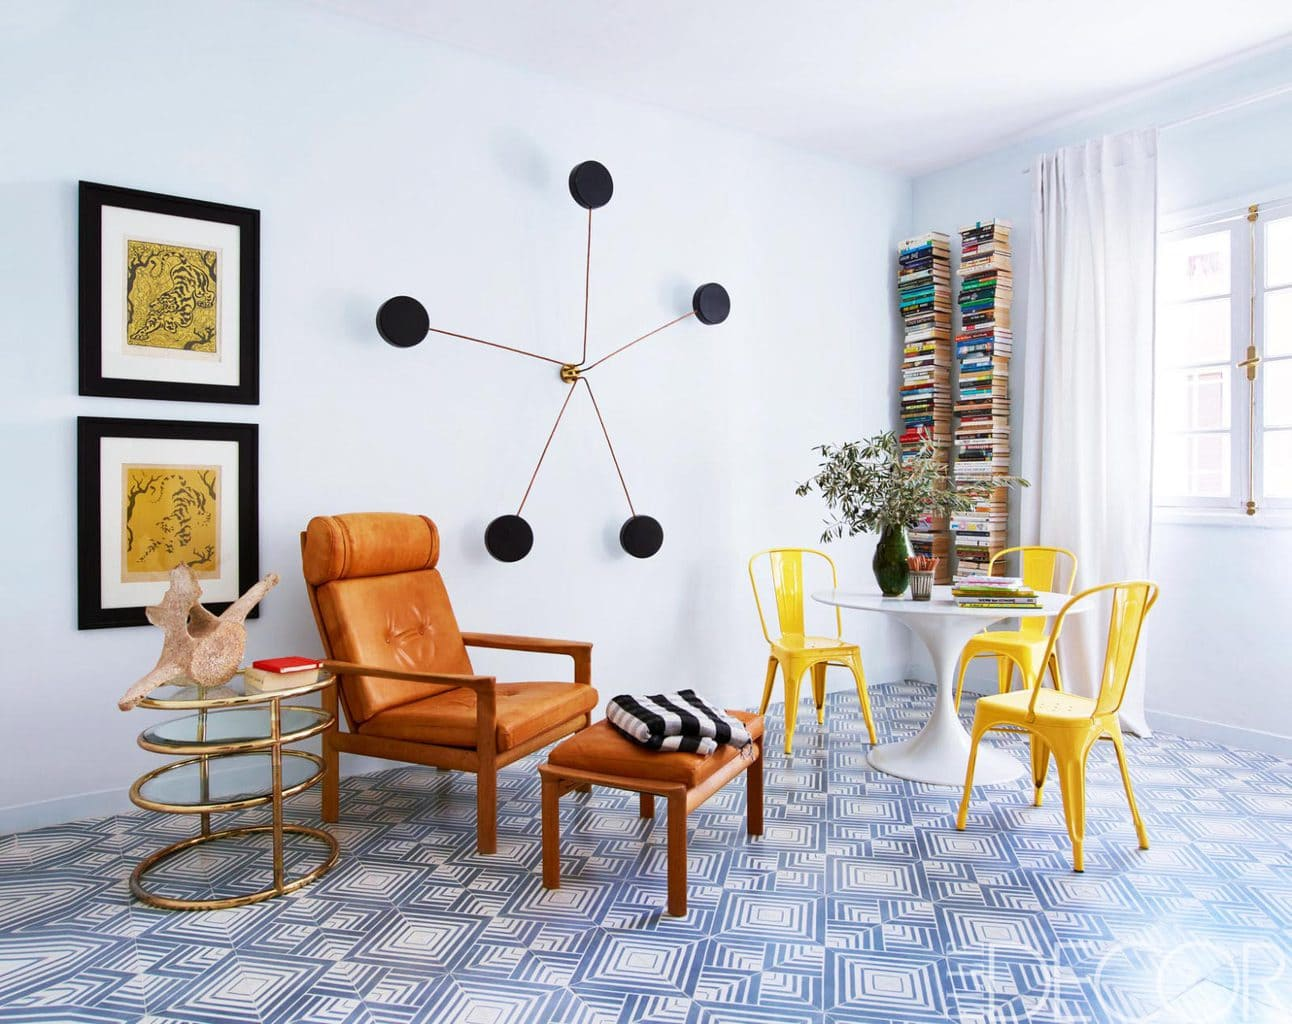 Bright playful living room at home with Moroccan tile designers.